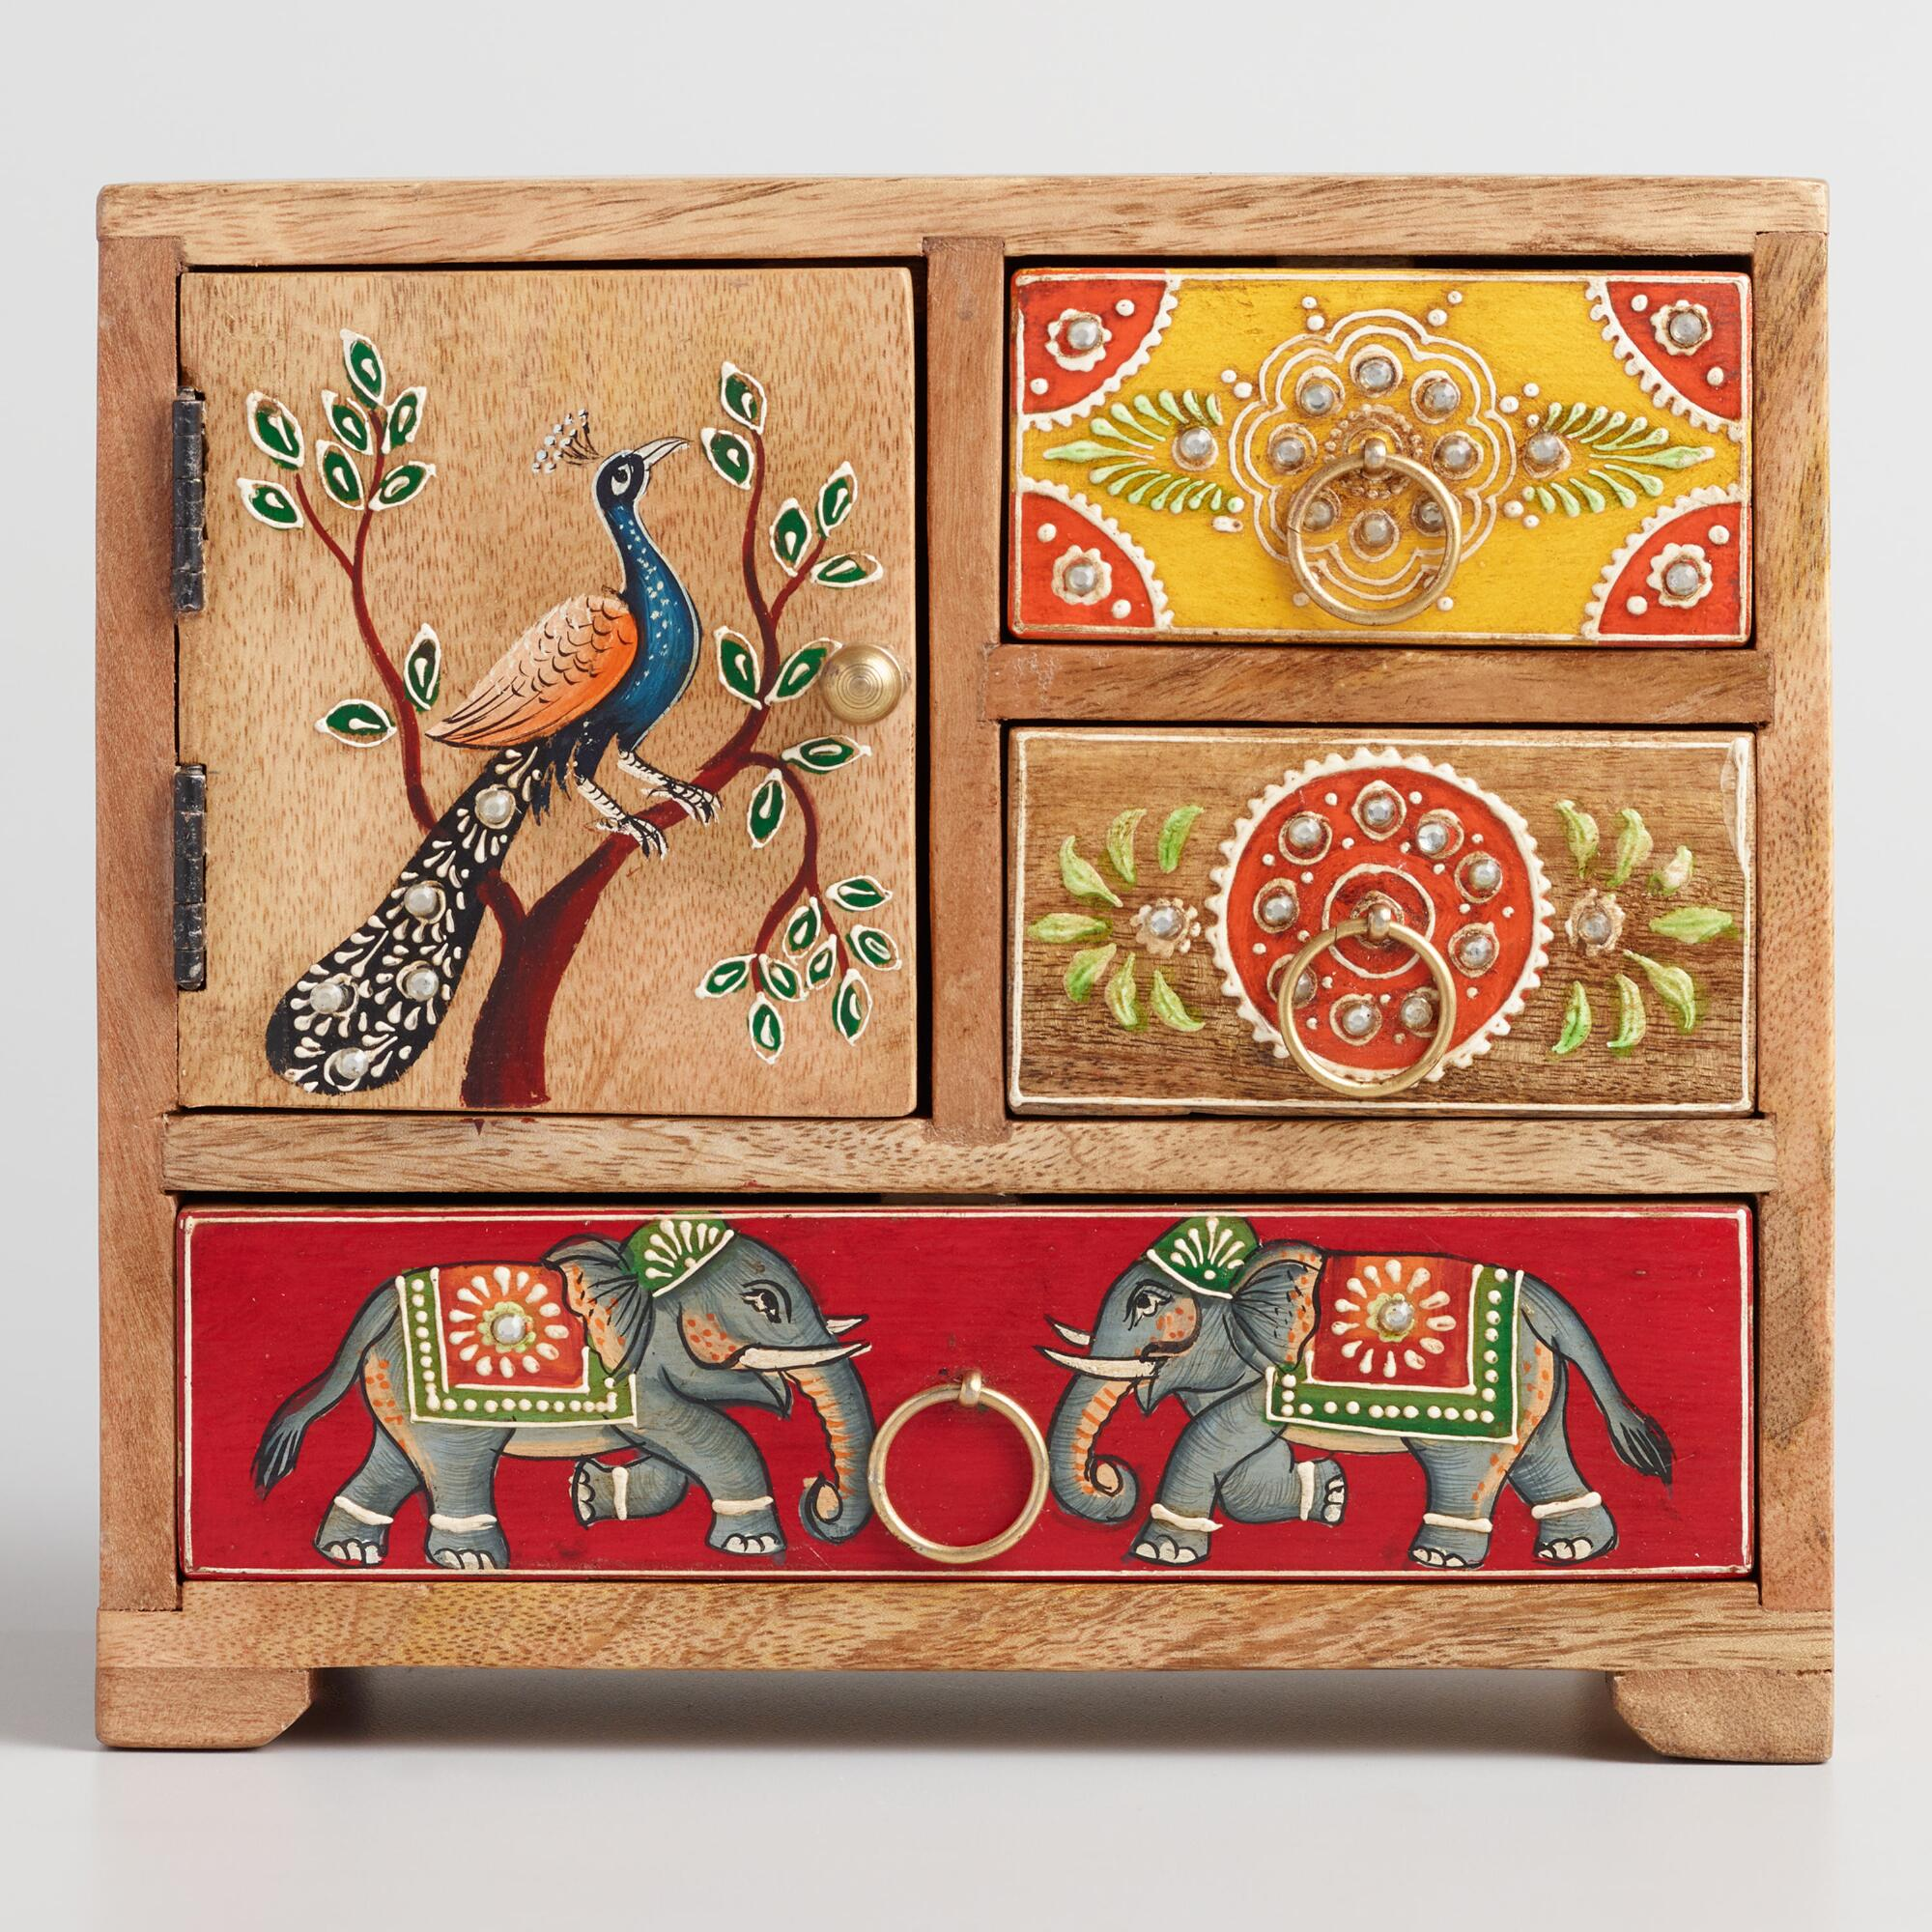 Hand Painted Elephant and Peacock Tabletop Storage Chest by World Market